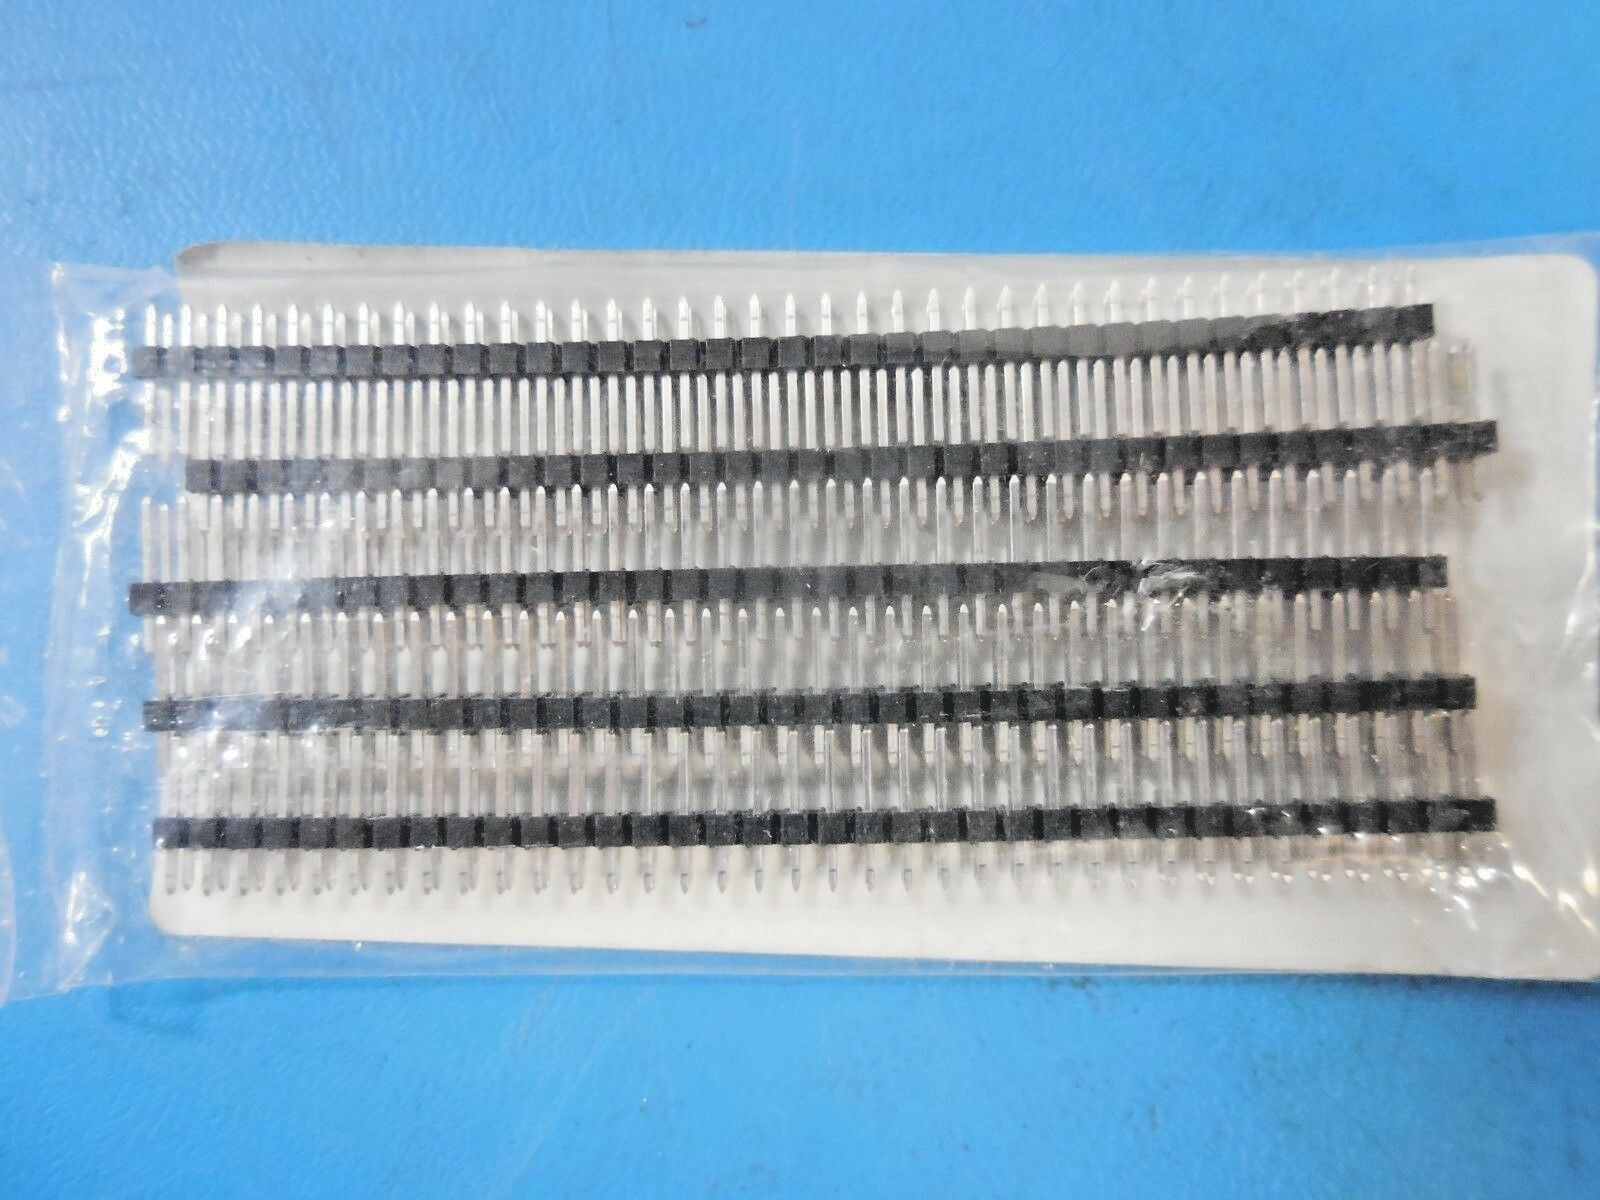 Lot of 7 67997-472HLF FCI Connector Header 72 Position Dual Row 2X36 2.54mm NOS